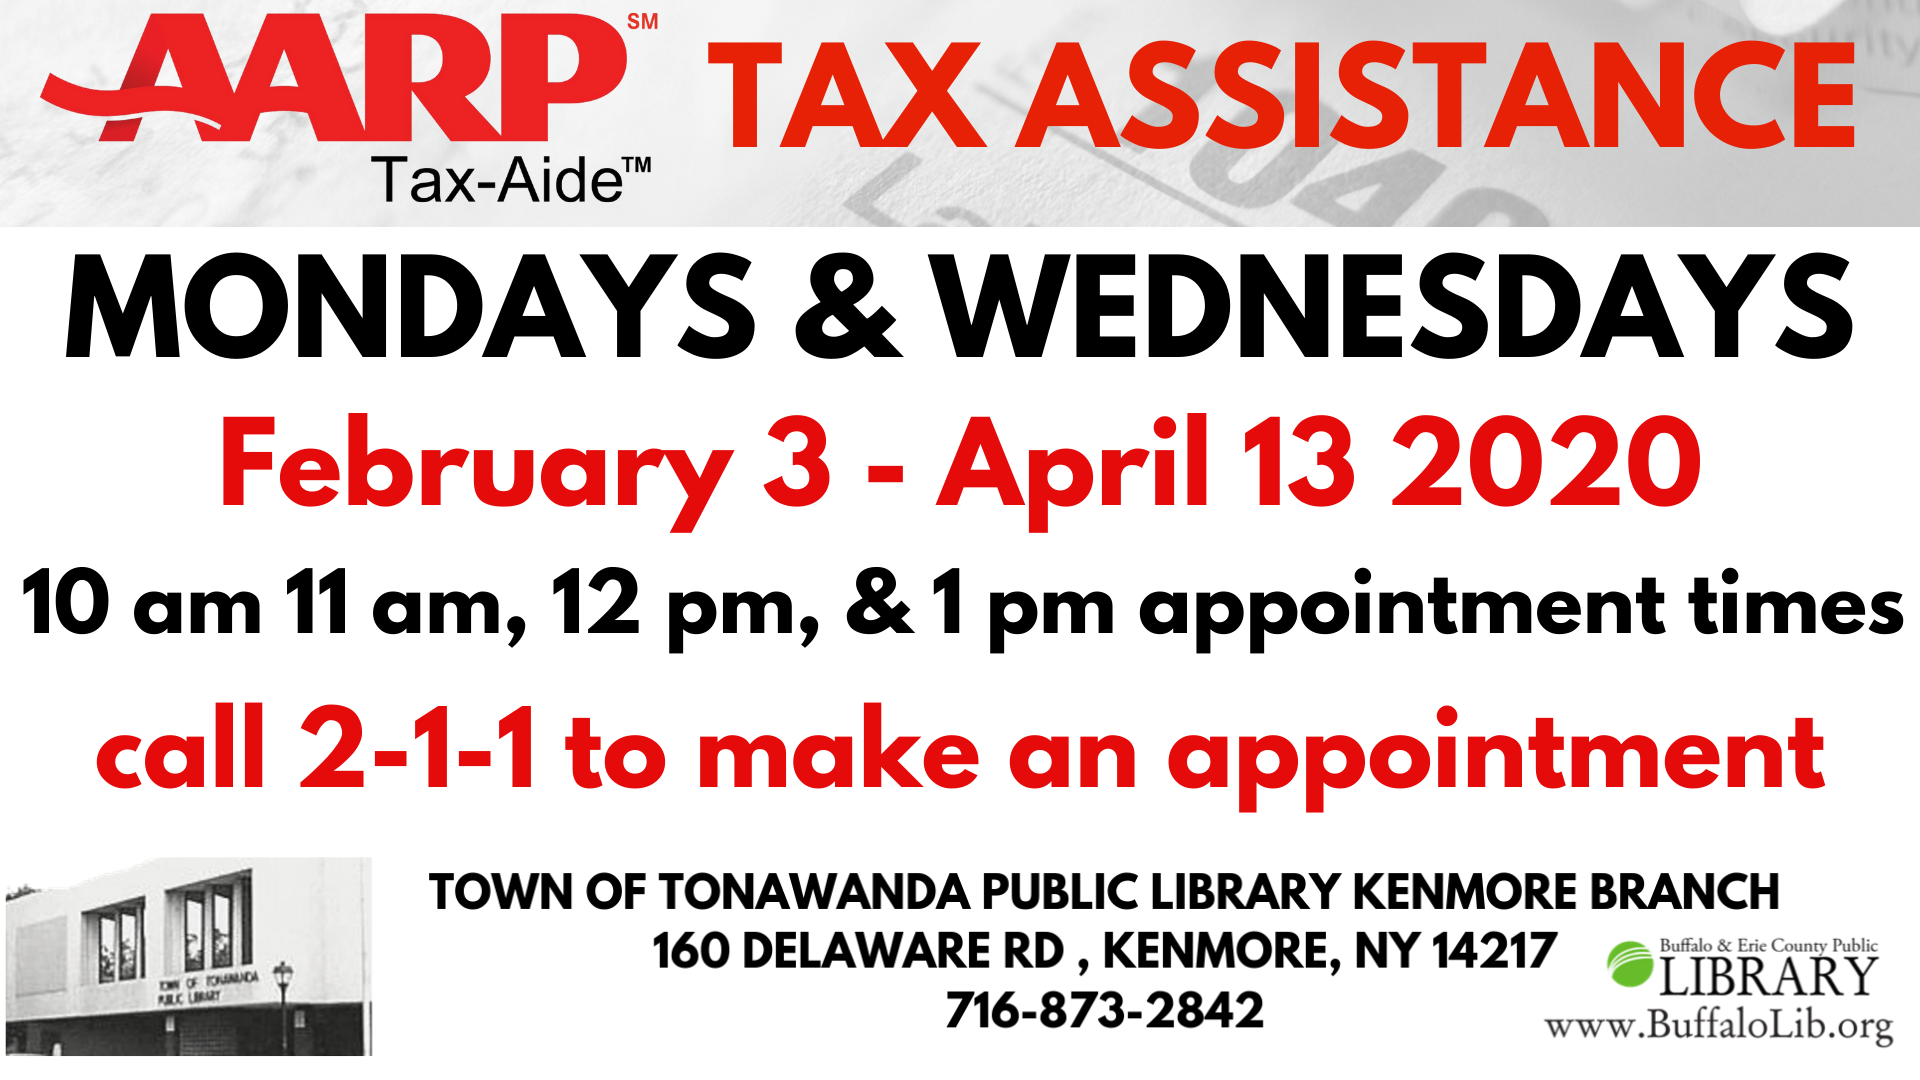 AARP Tax-Aide: Tax Assistance